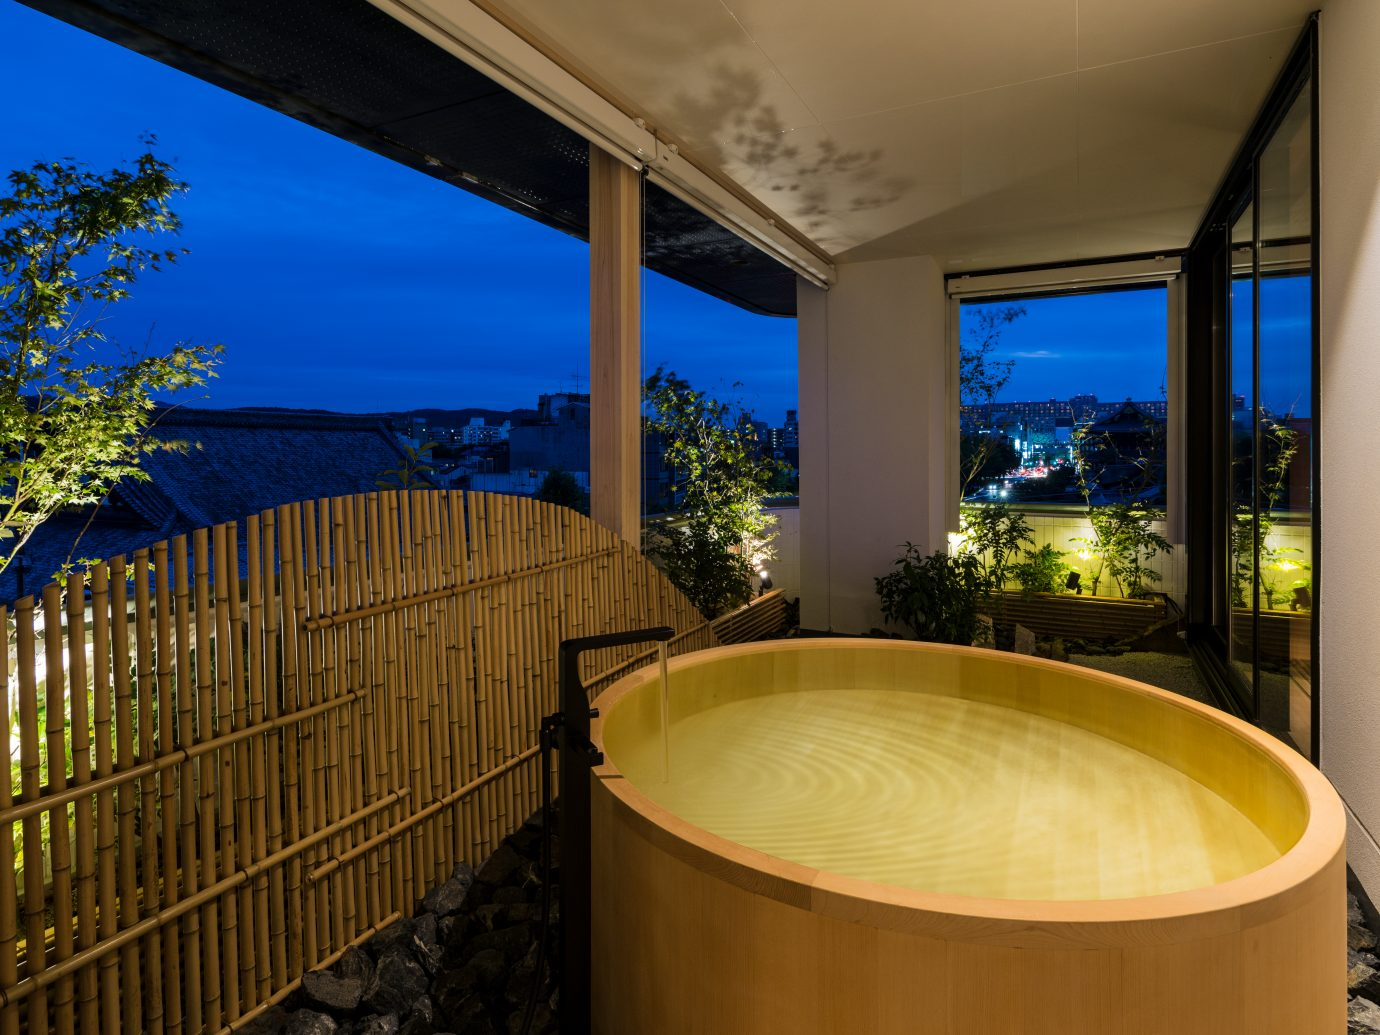 outdoor large wooden circle bathtub at night